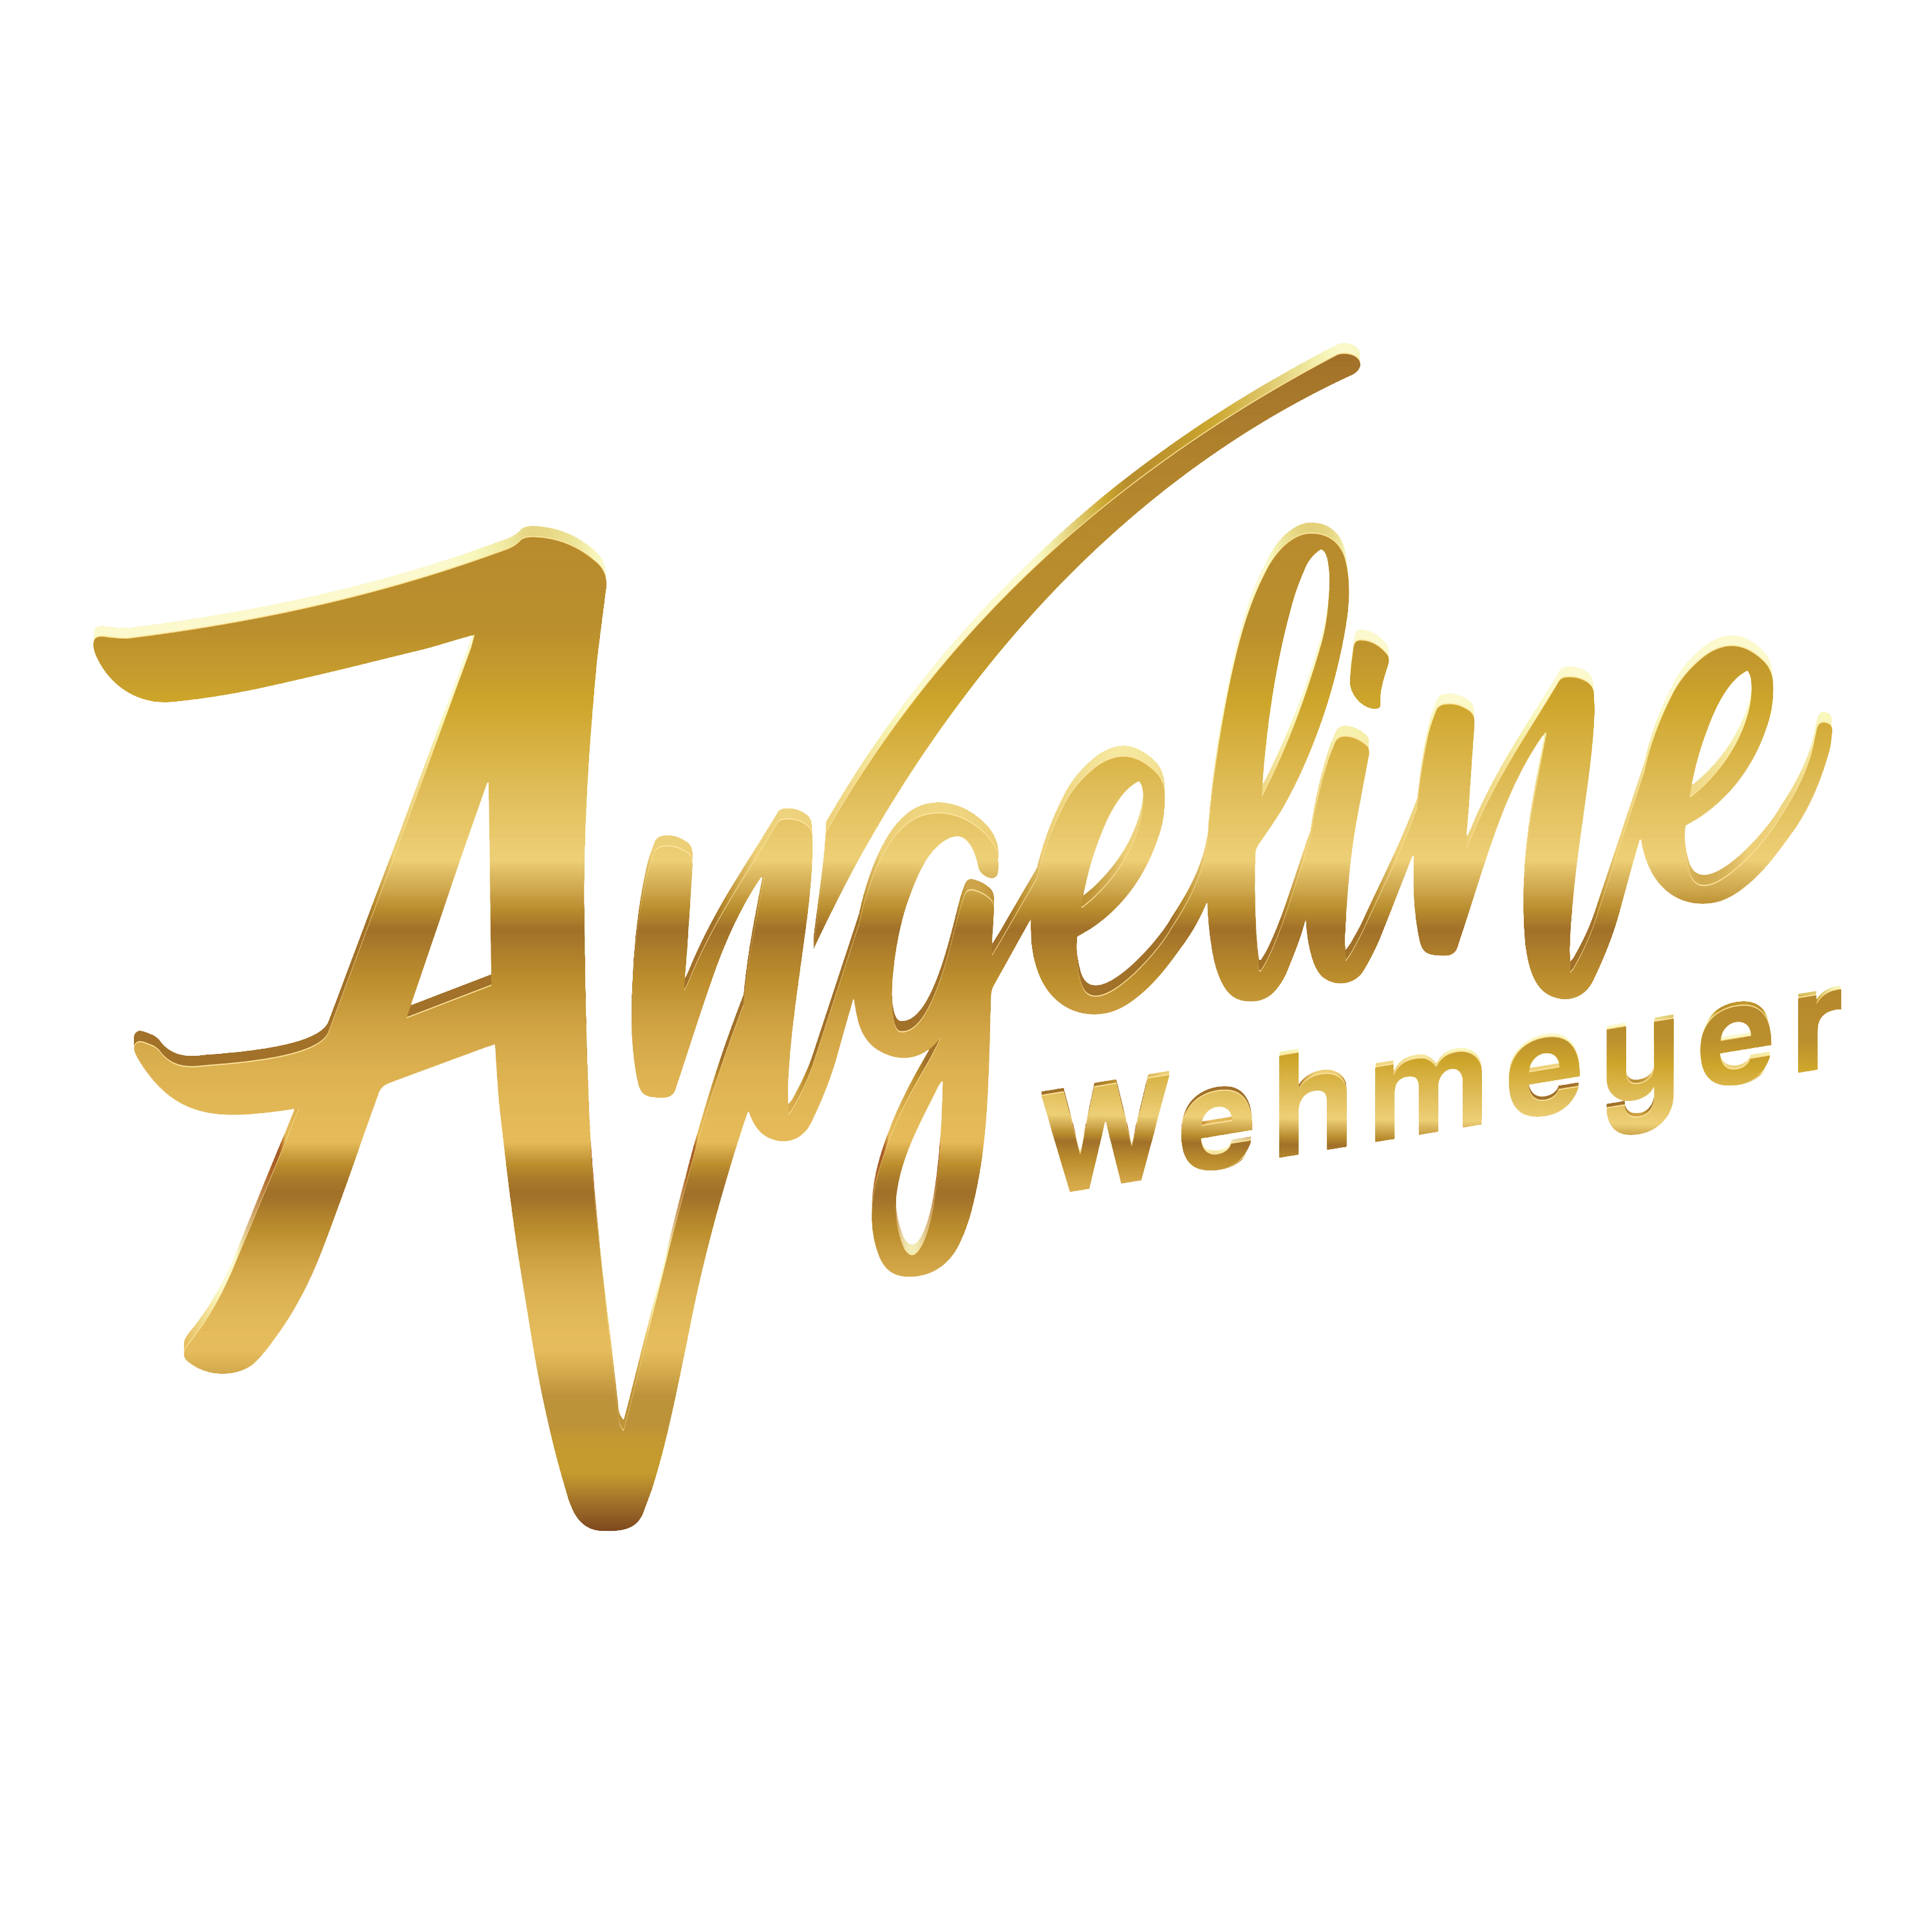 Angeline-Wehmeyer-Signature